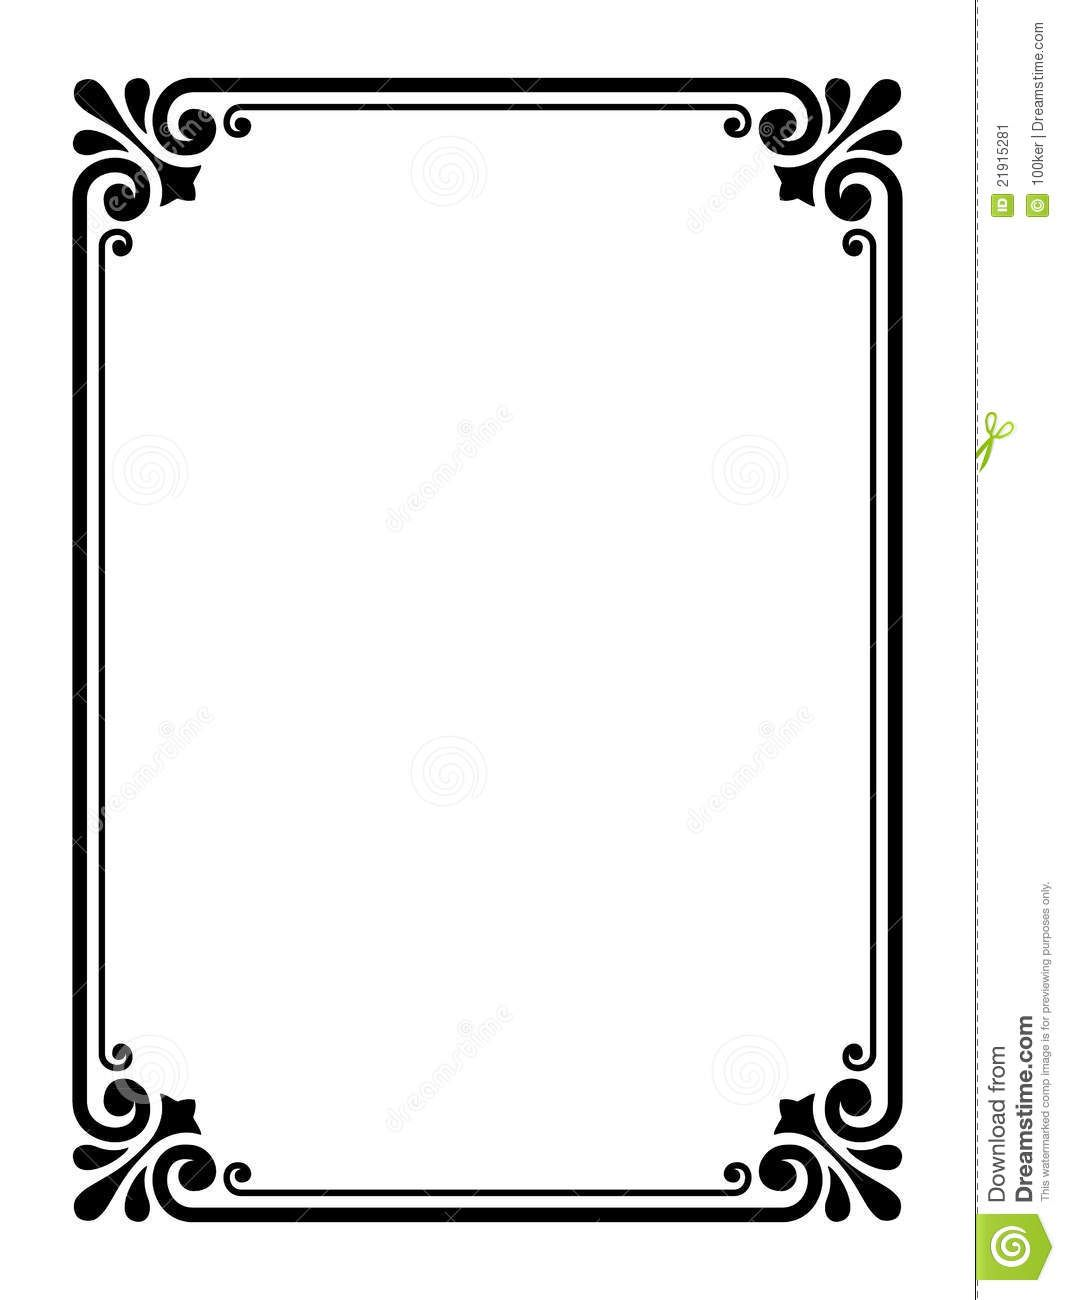 Simple Frame Clipart - Clipart Kid | House ideas | Pinterest ...